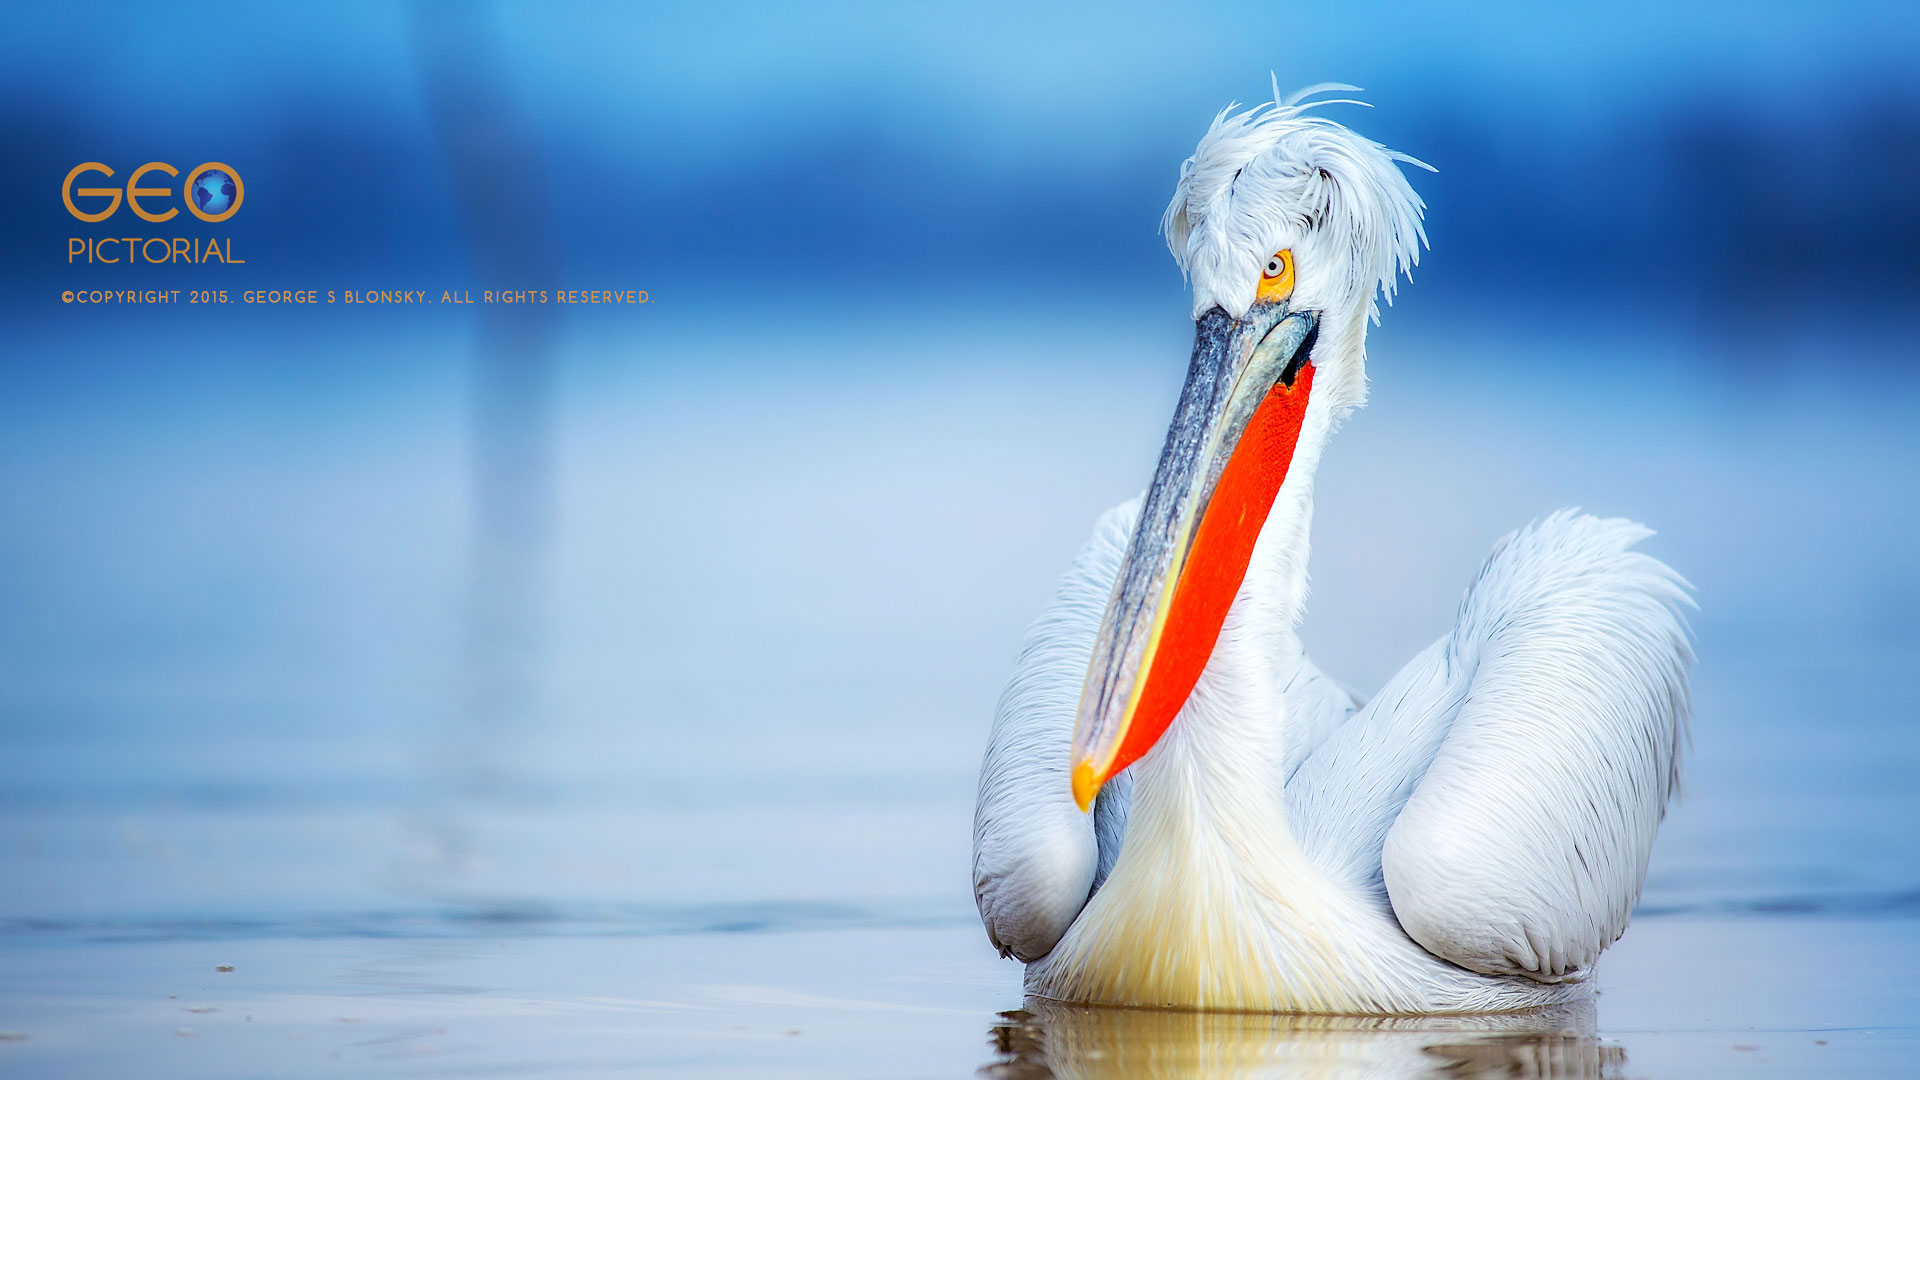 Dalmatian Pelican at Lake Kerkini.